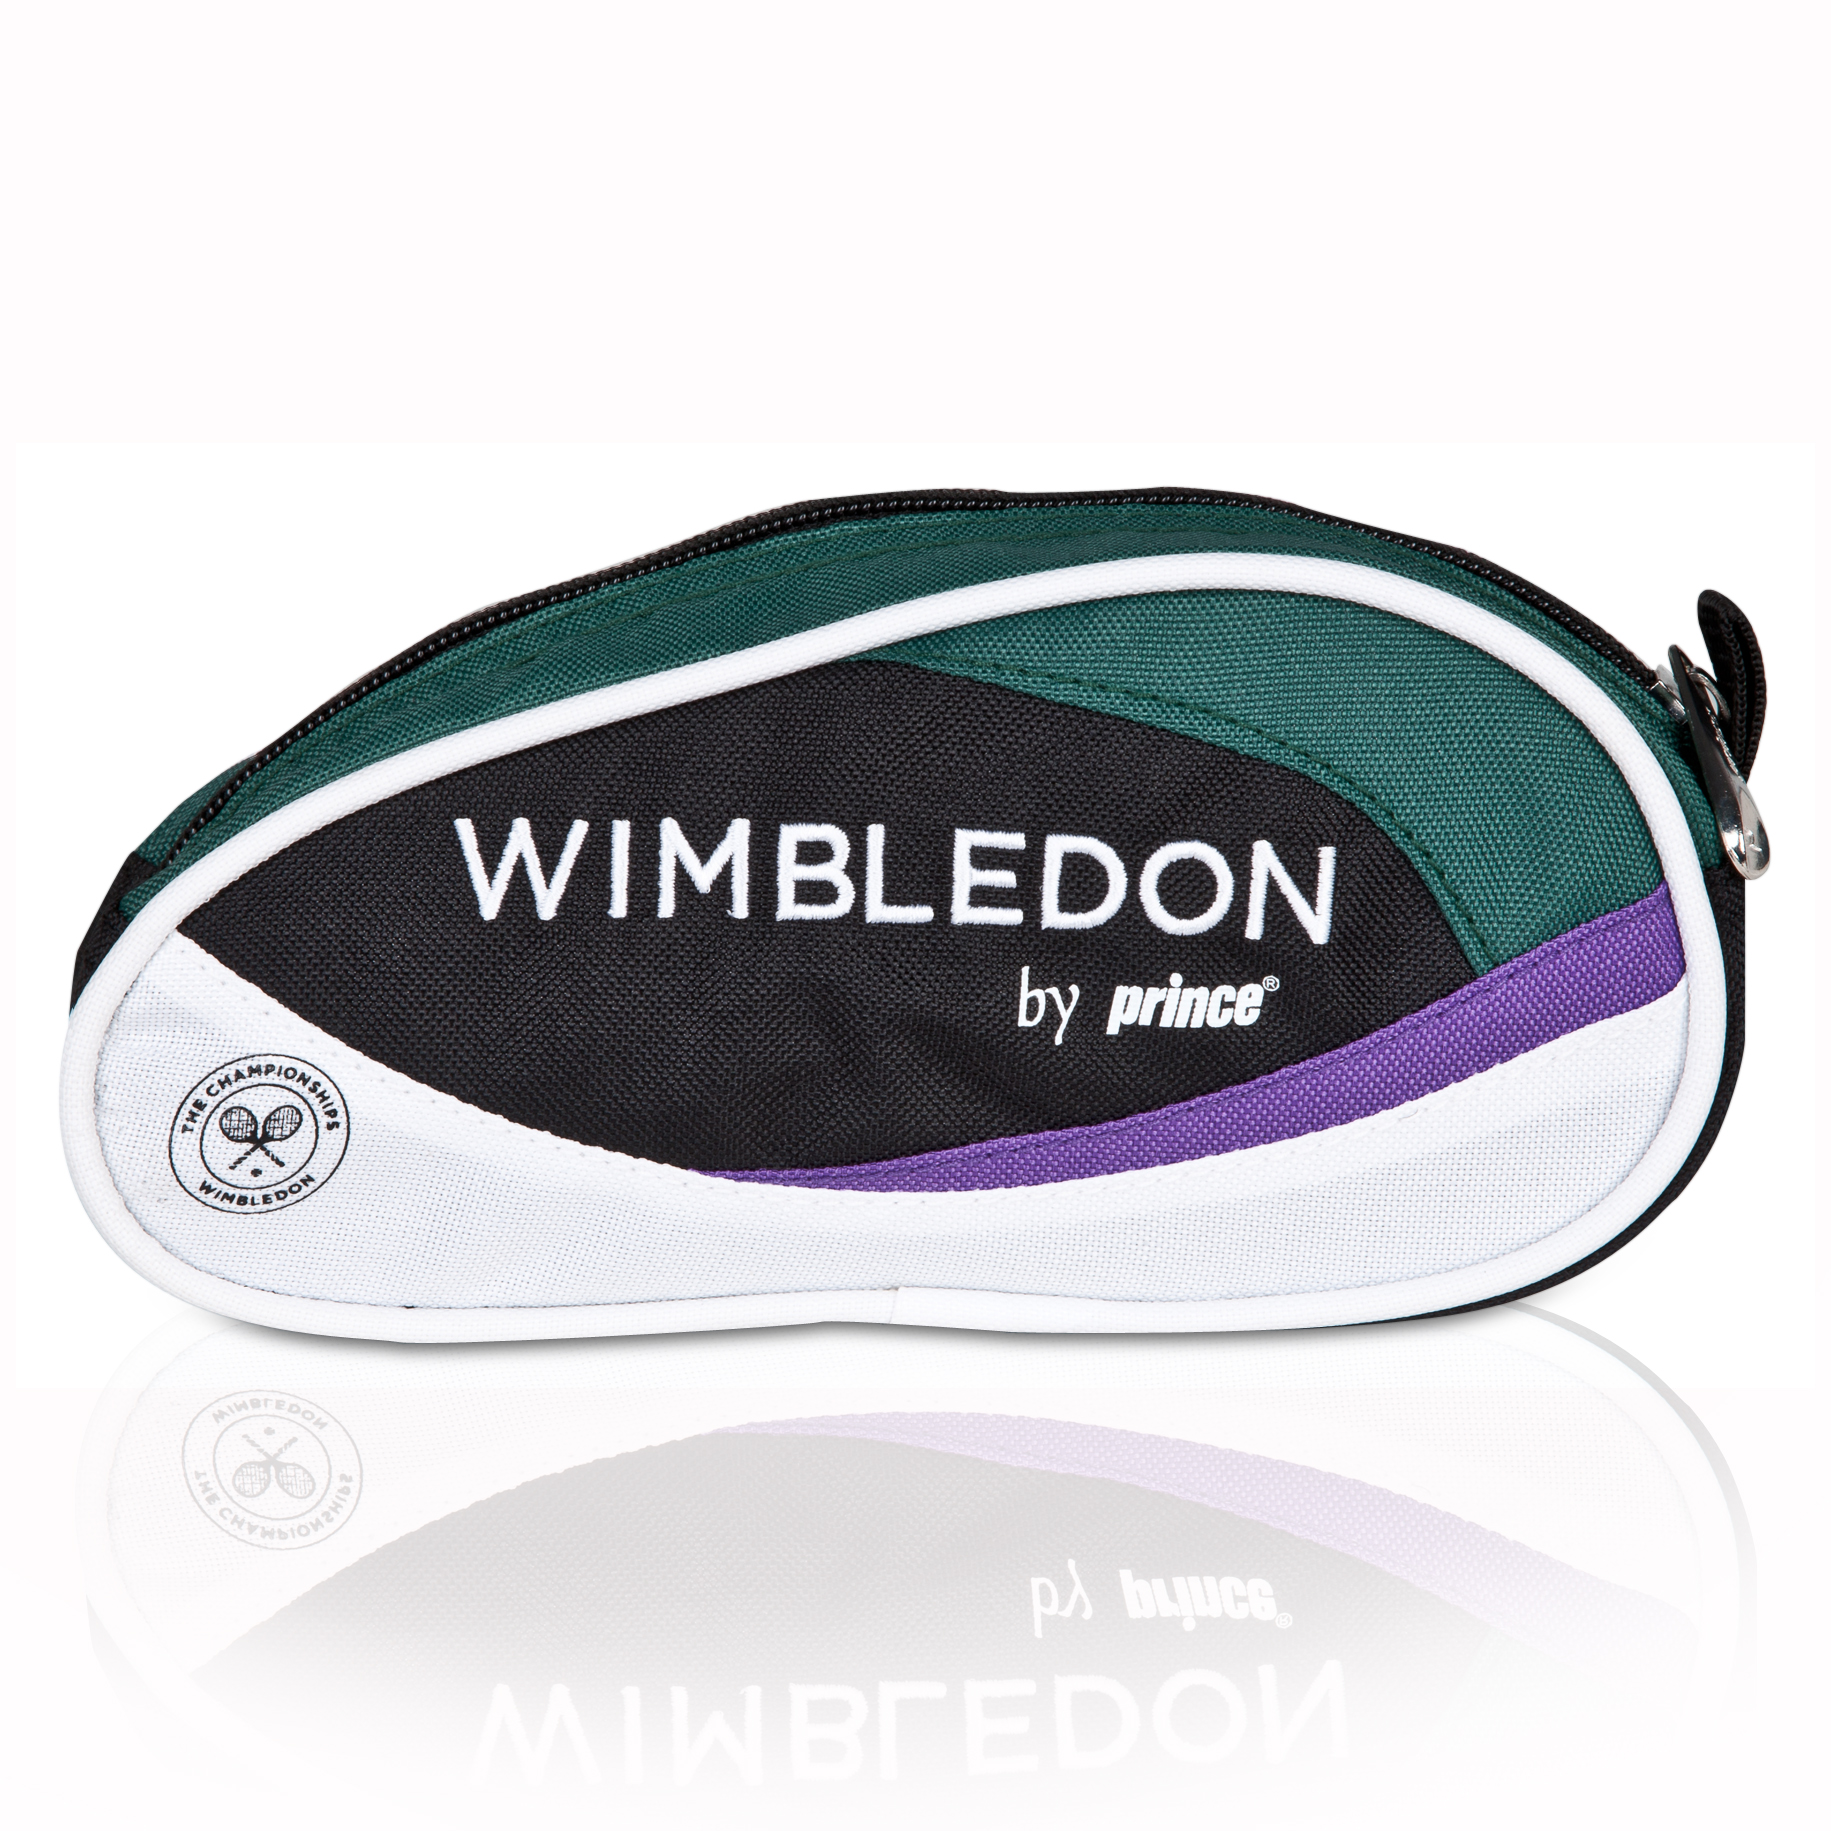 Wimbledon By Prince Grass Court Collection Pencil Case